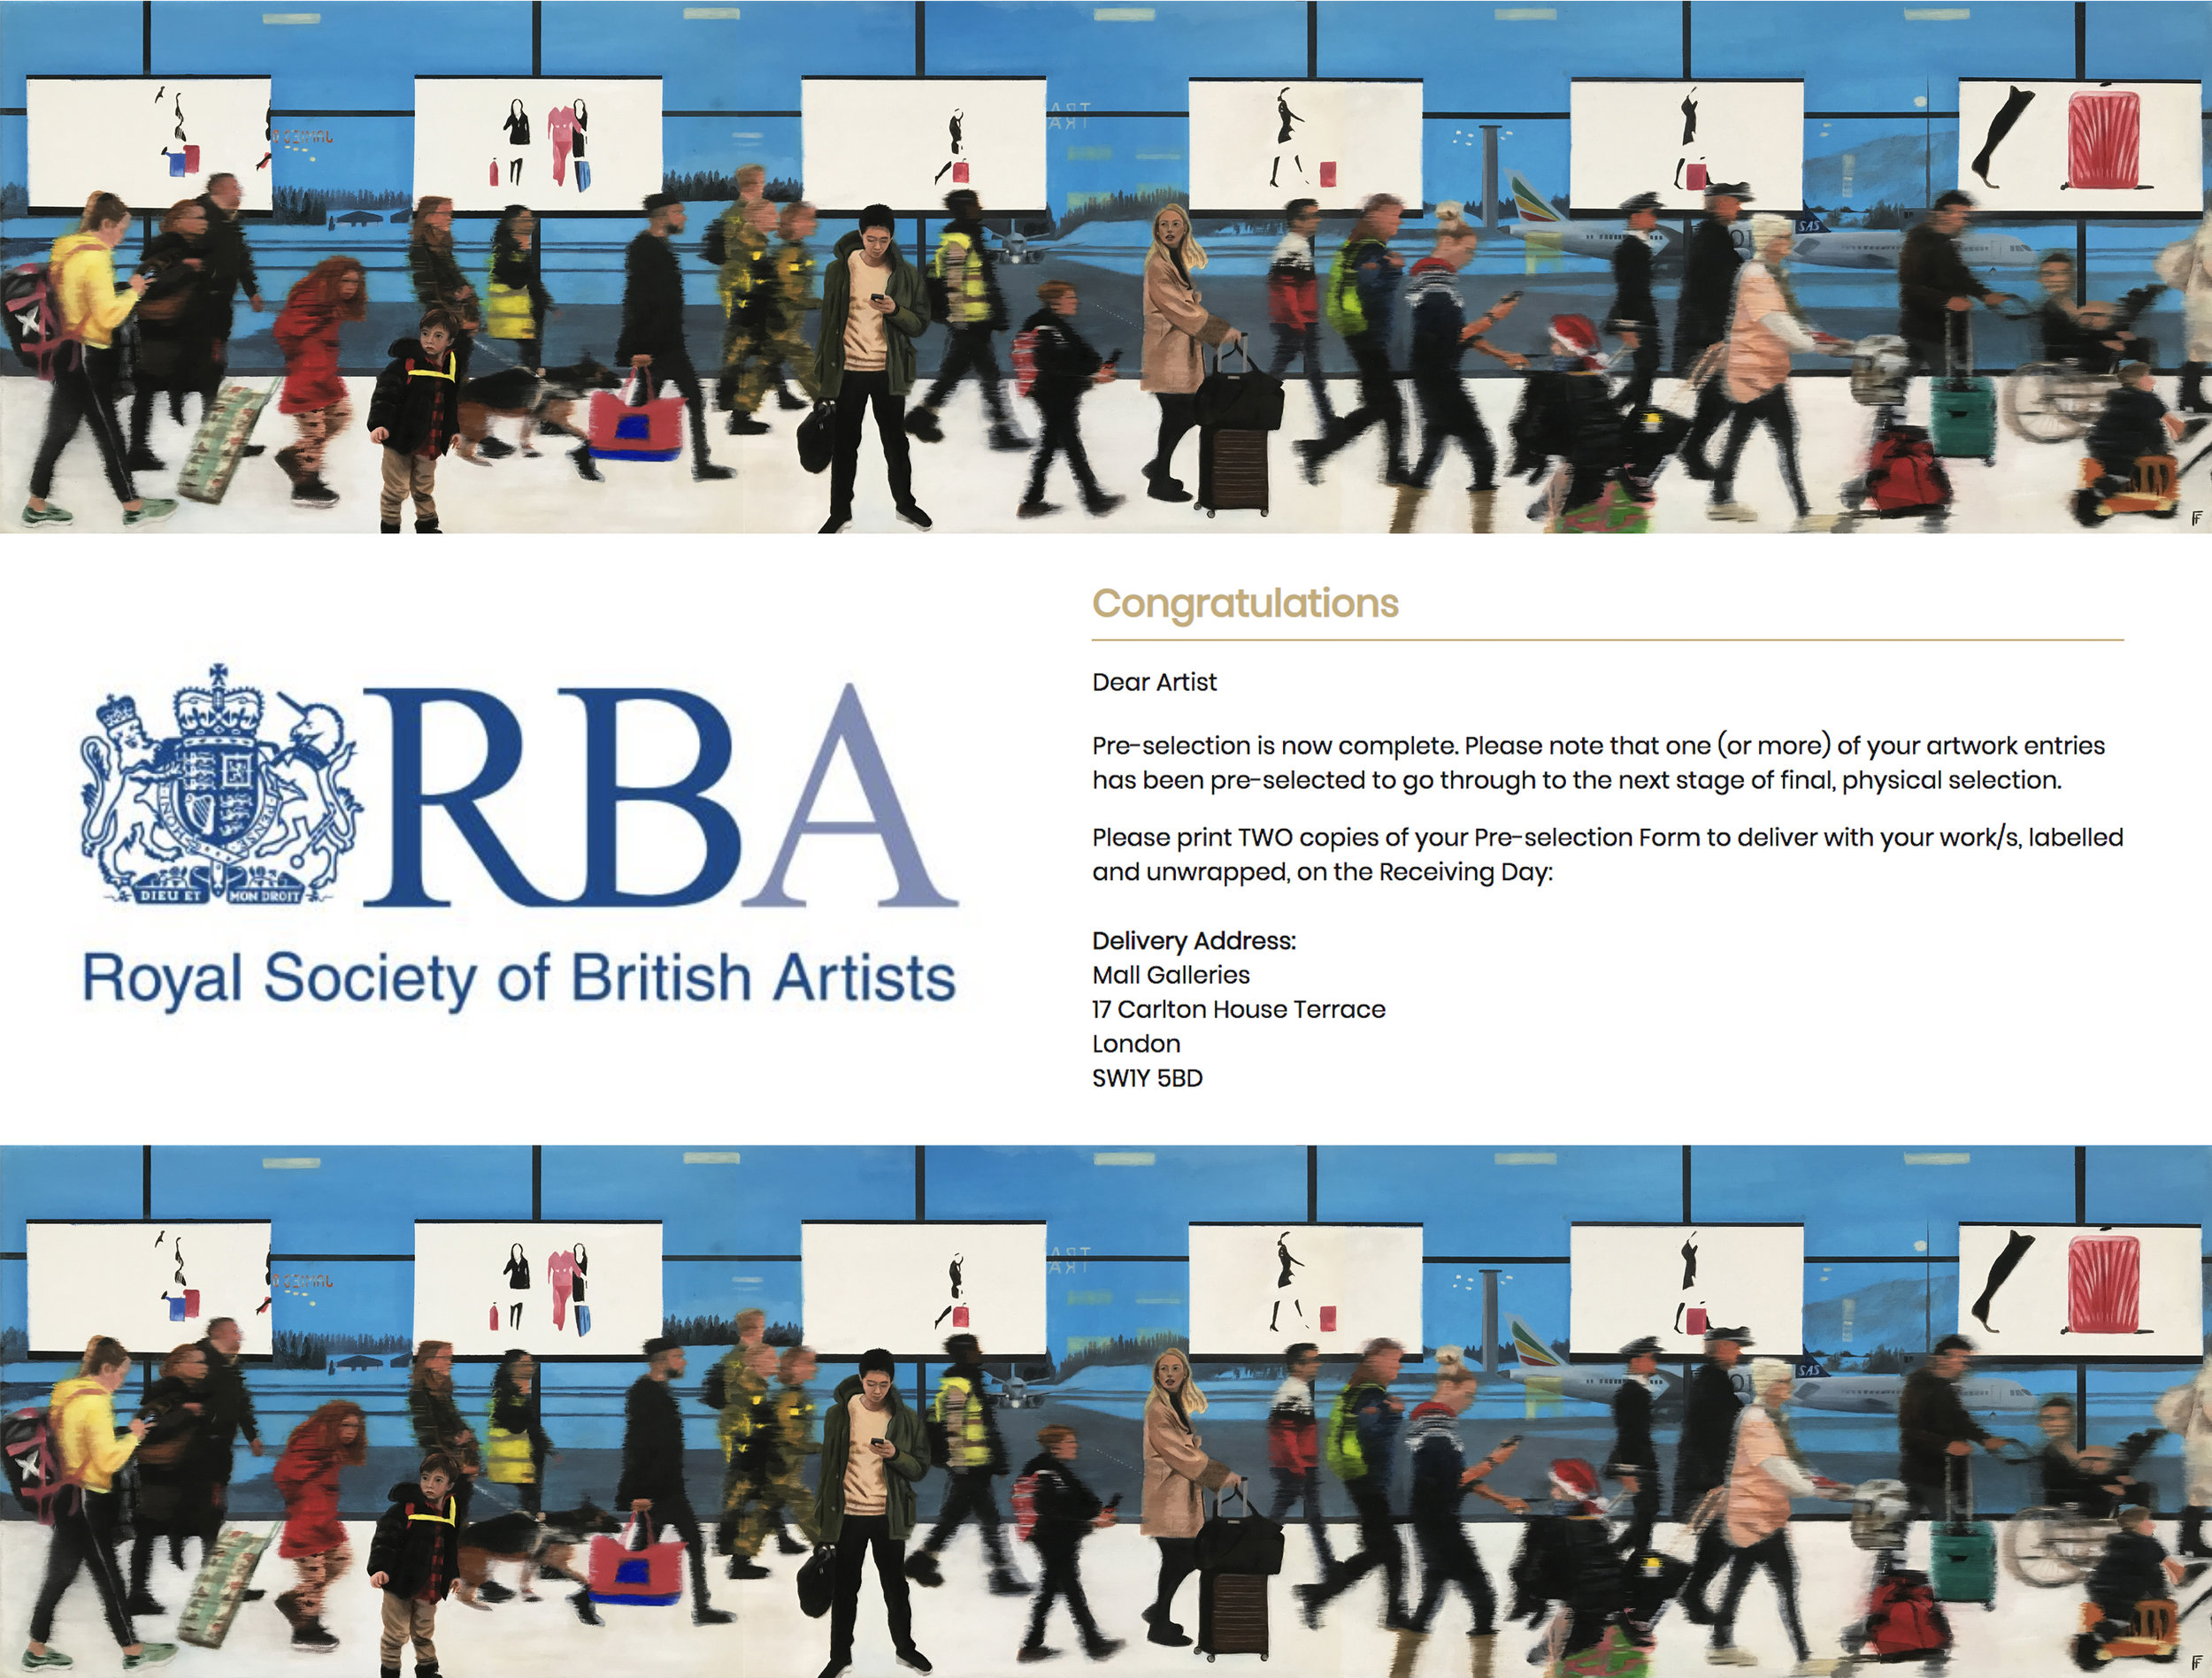 Royal Society of British Artists - Pre-selected to go through to the final selection at The Mall Galleries for the RBA's annual 2019 exhibition.